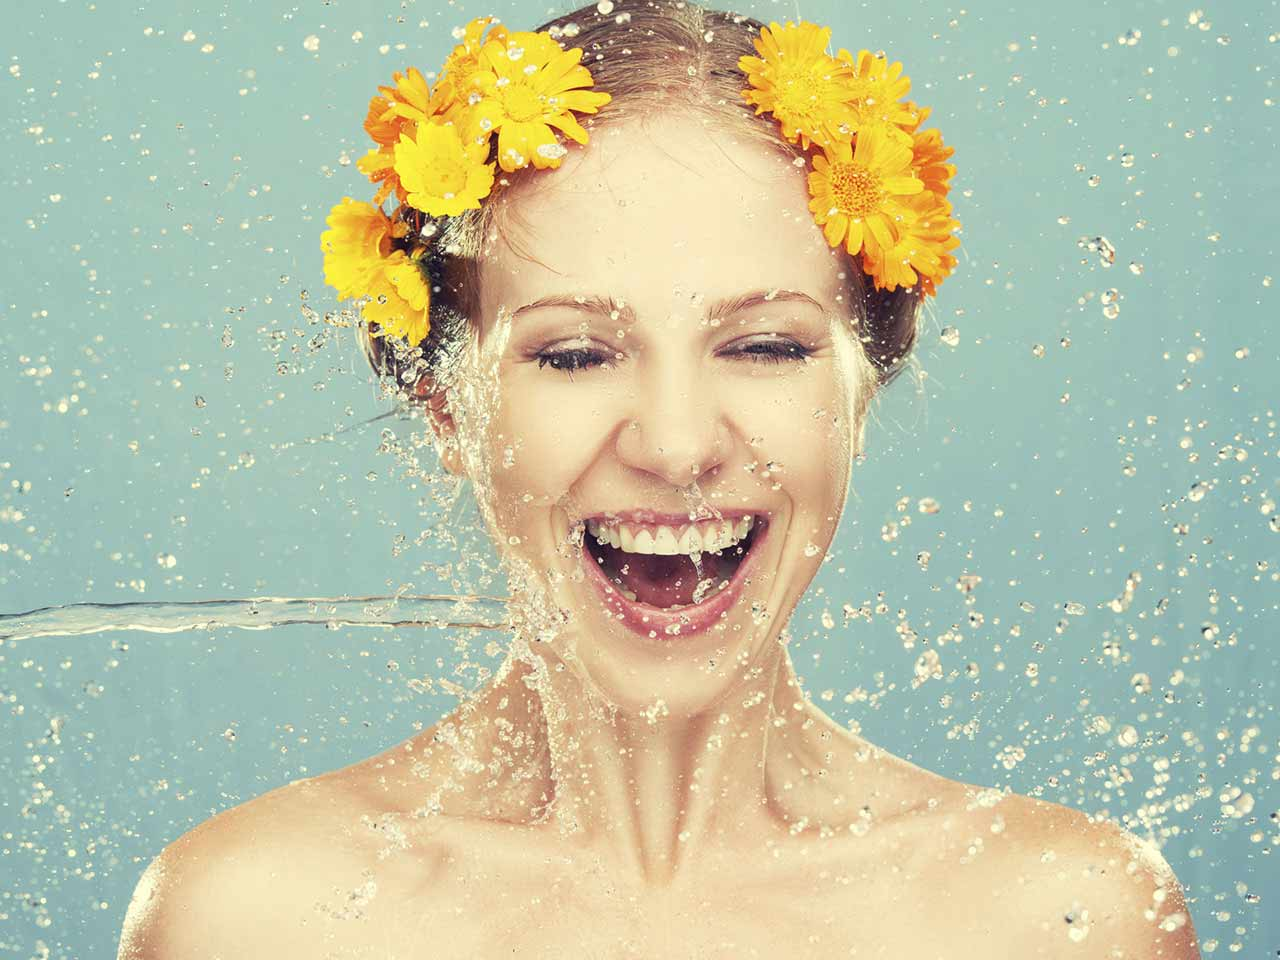 Woman being showered with water as part of her skin care routine